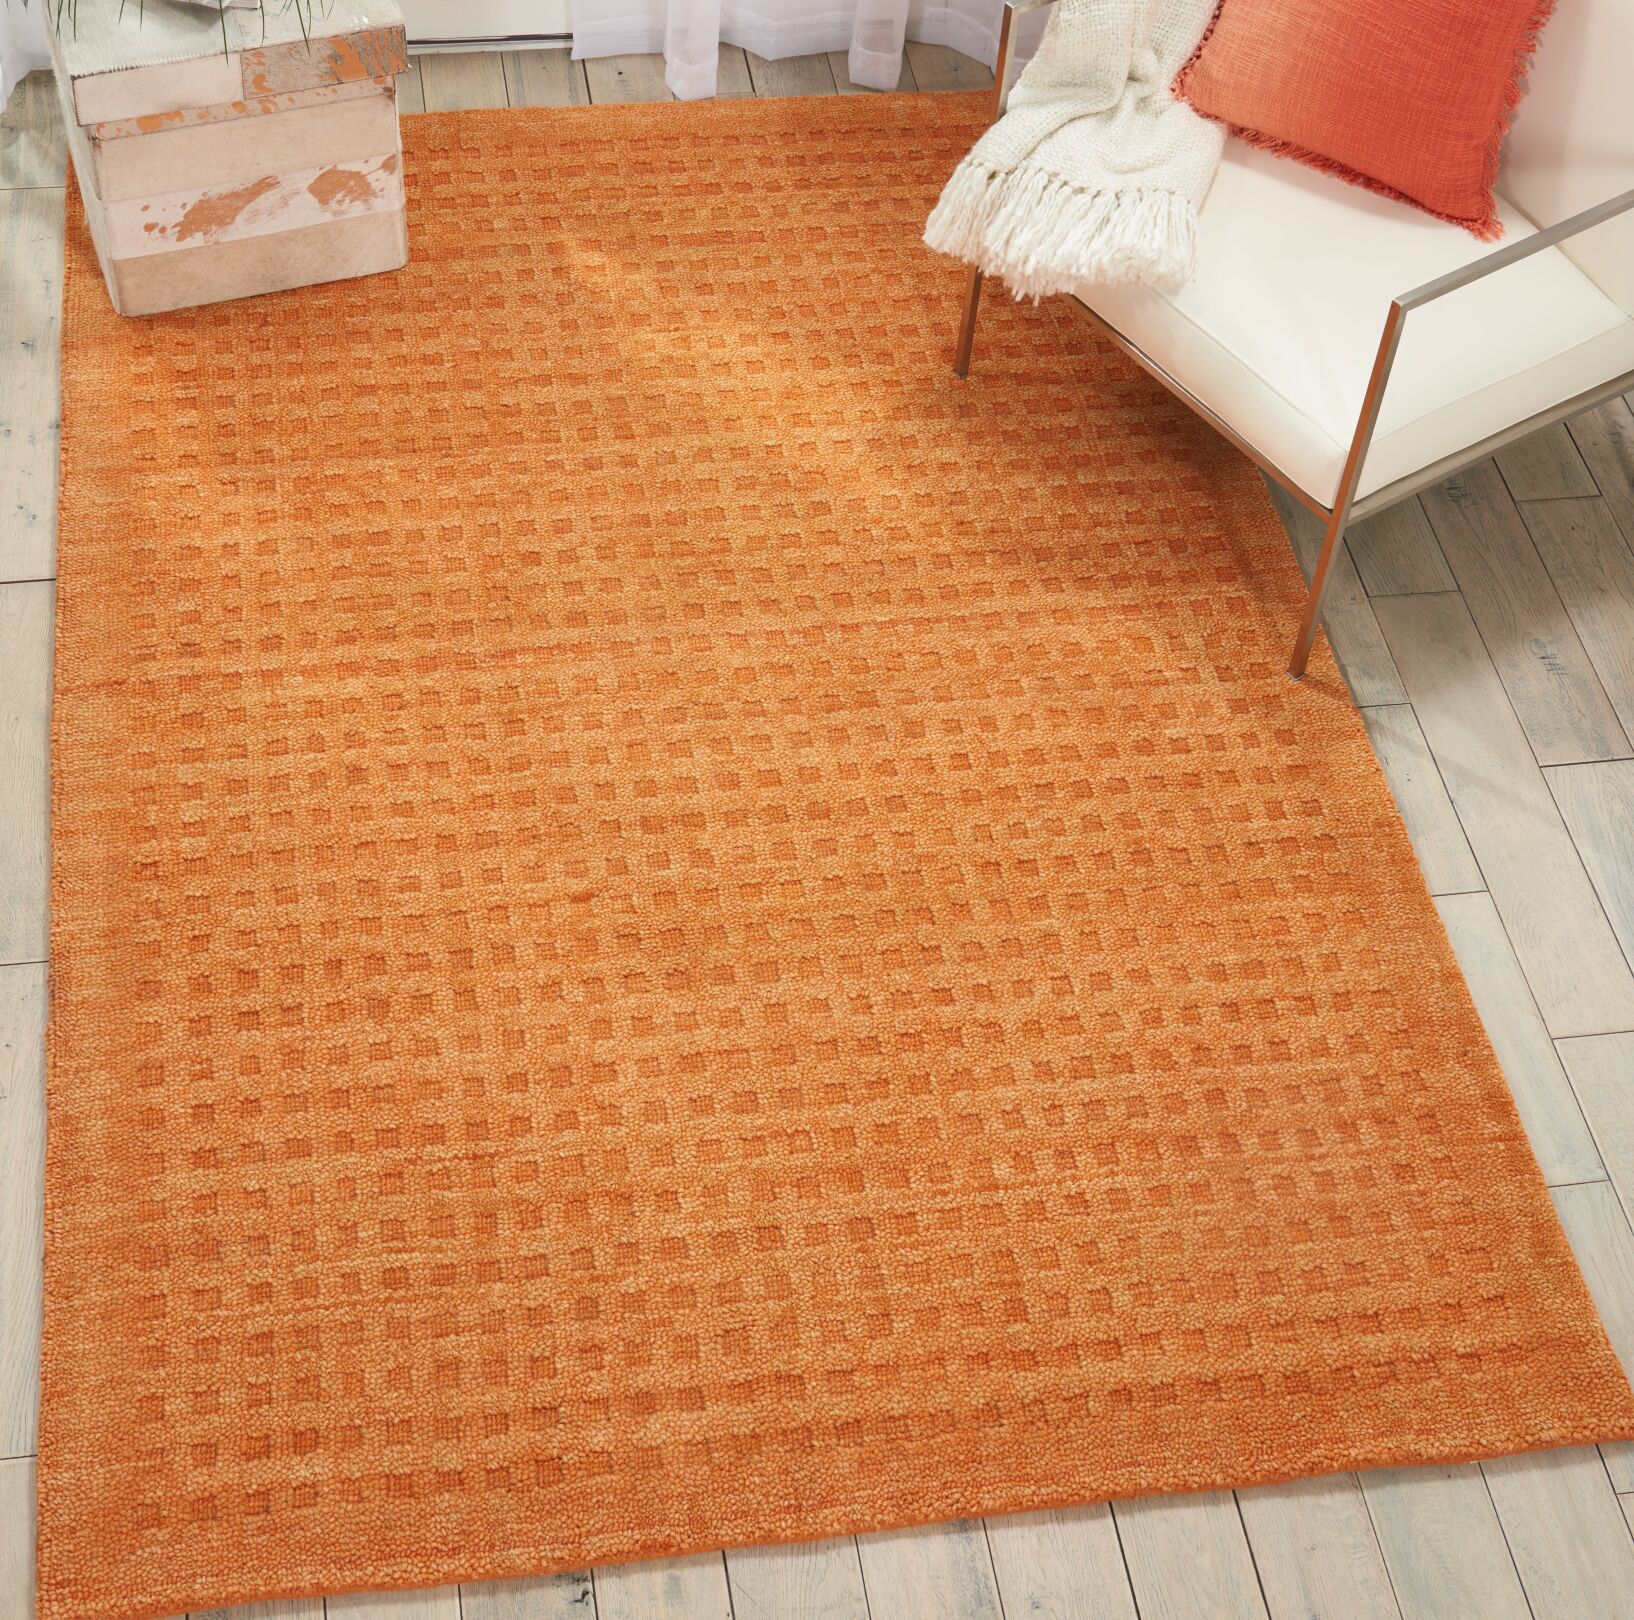 Dove Solid Hand-Tufted Wool Sunset Orange Area Rug Rug Size: Rectangle 3'9